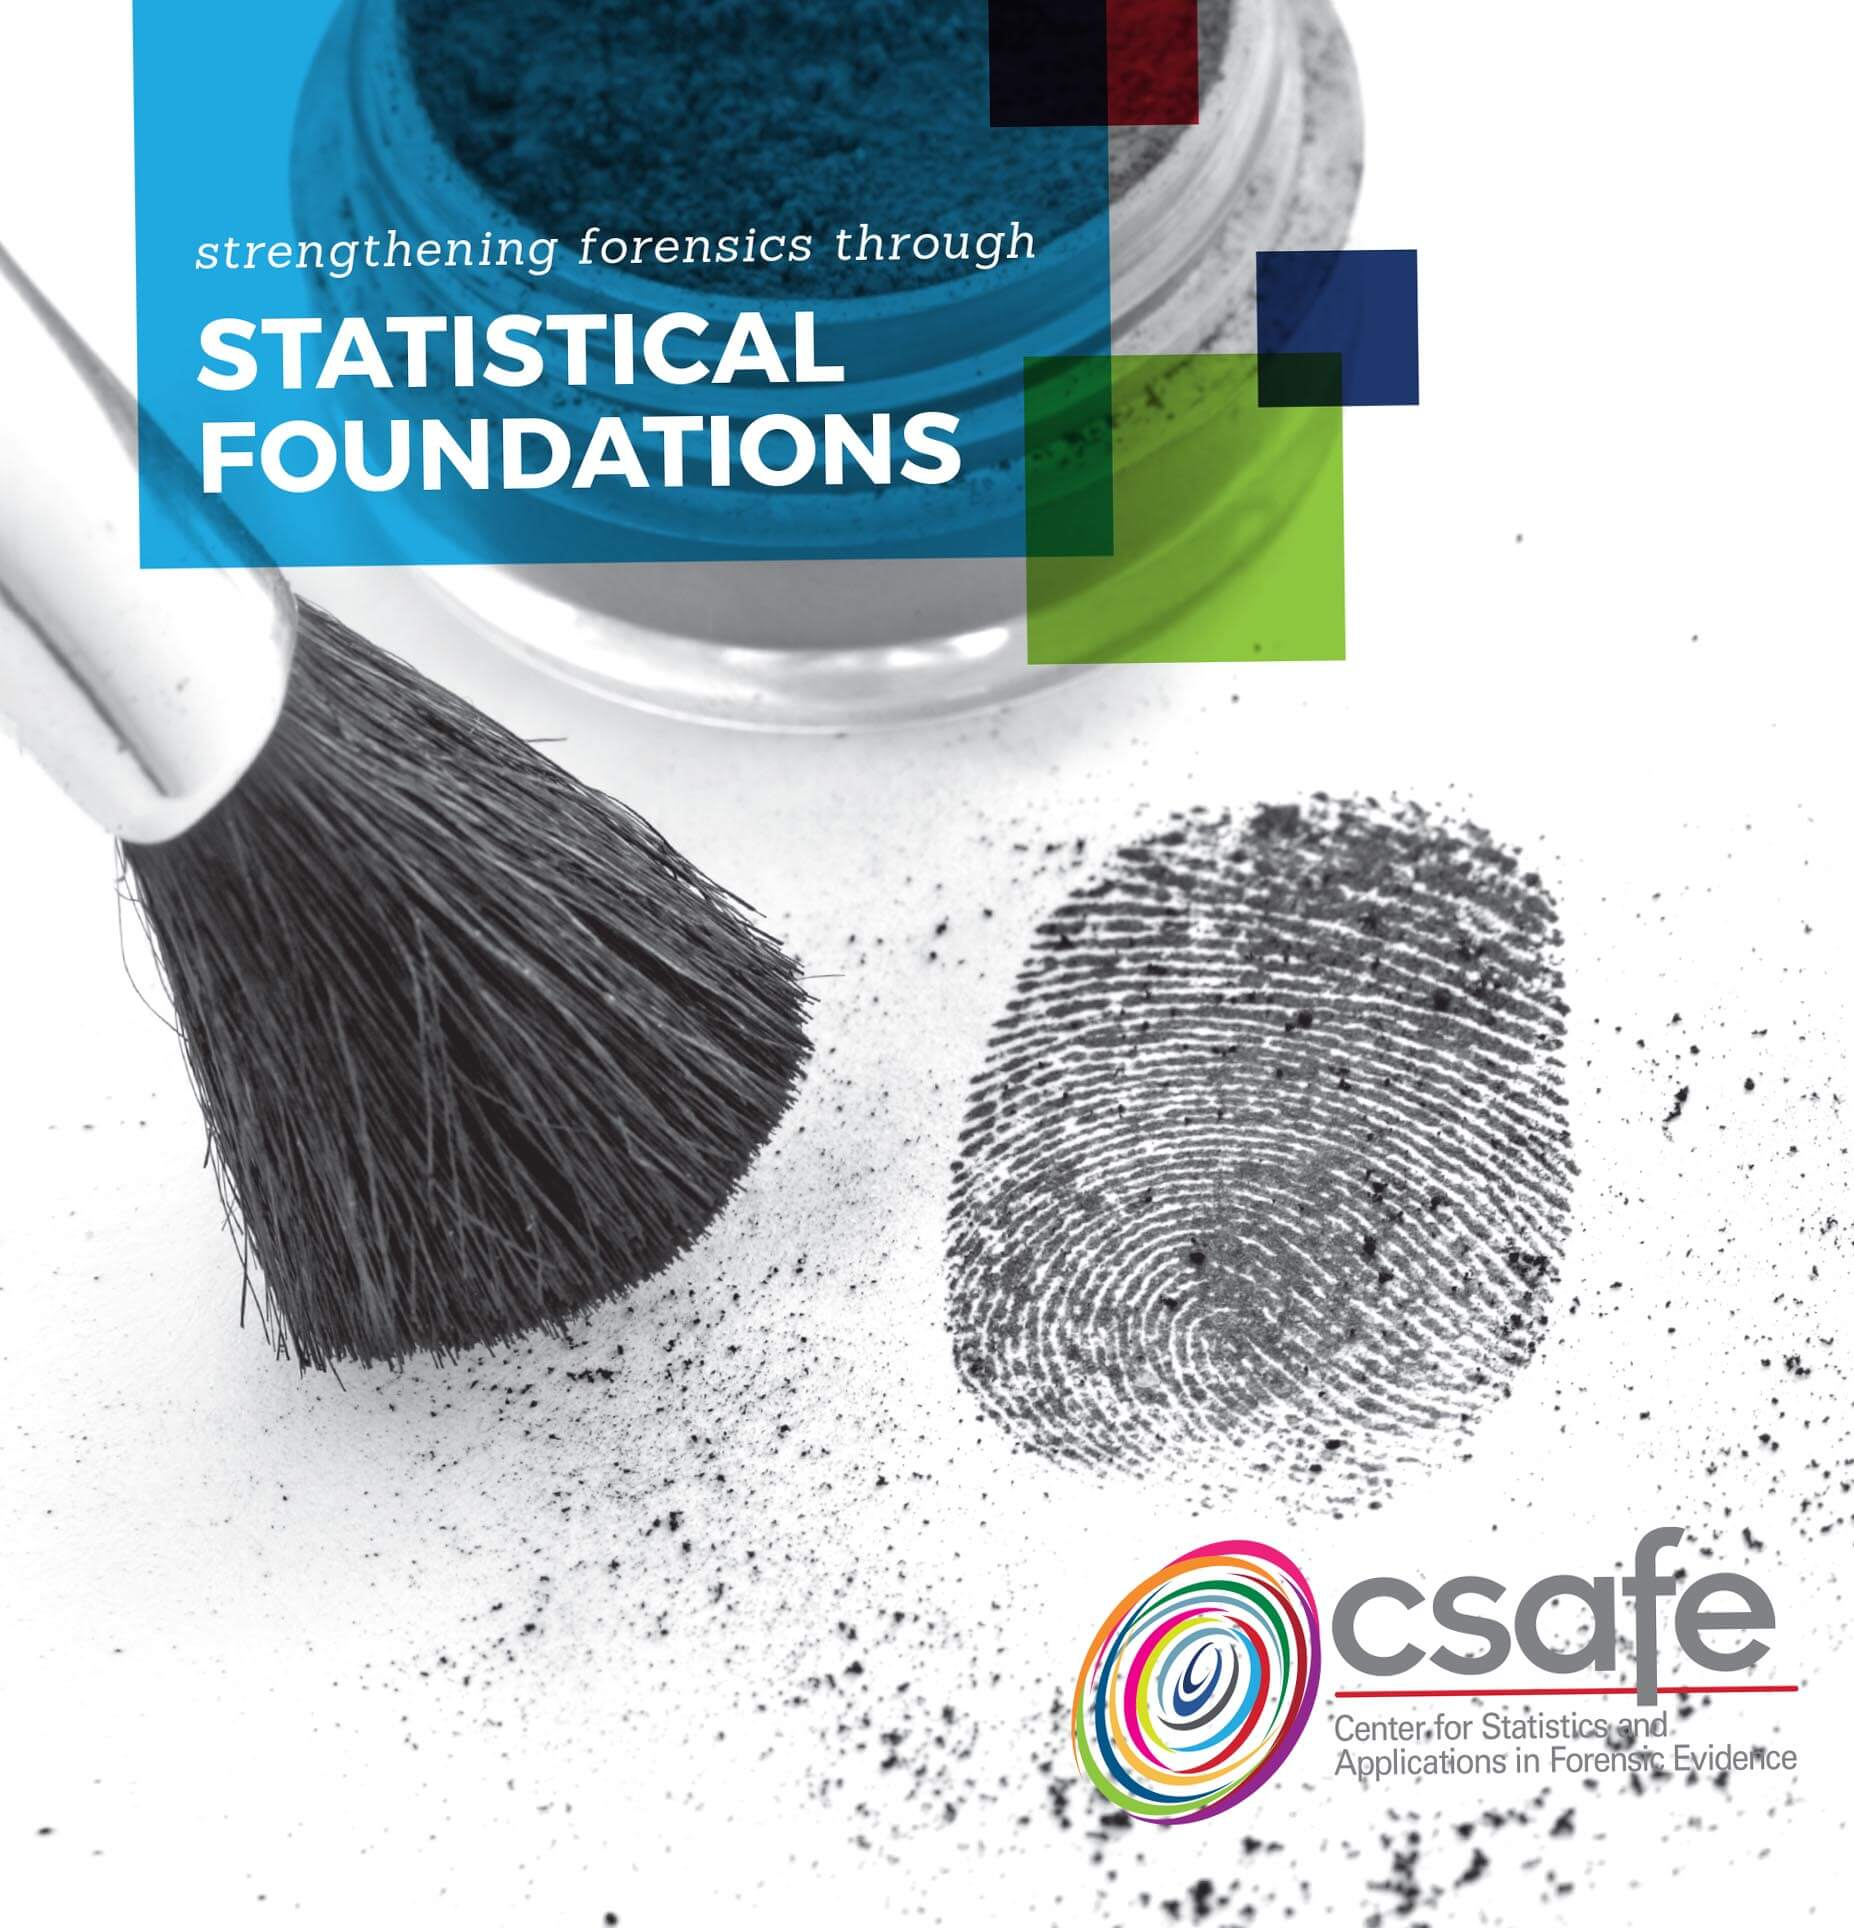 ISU Center for Statistics and Applications in Forensic Evidence